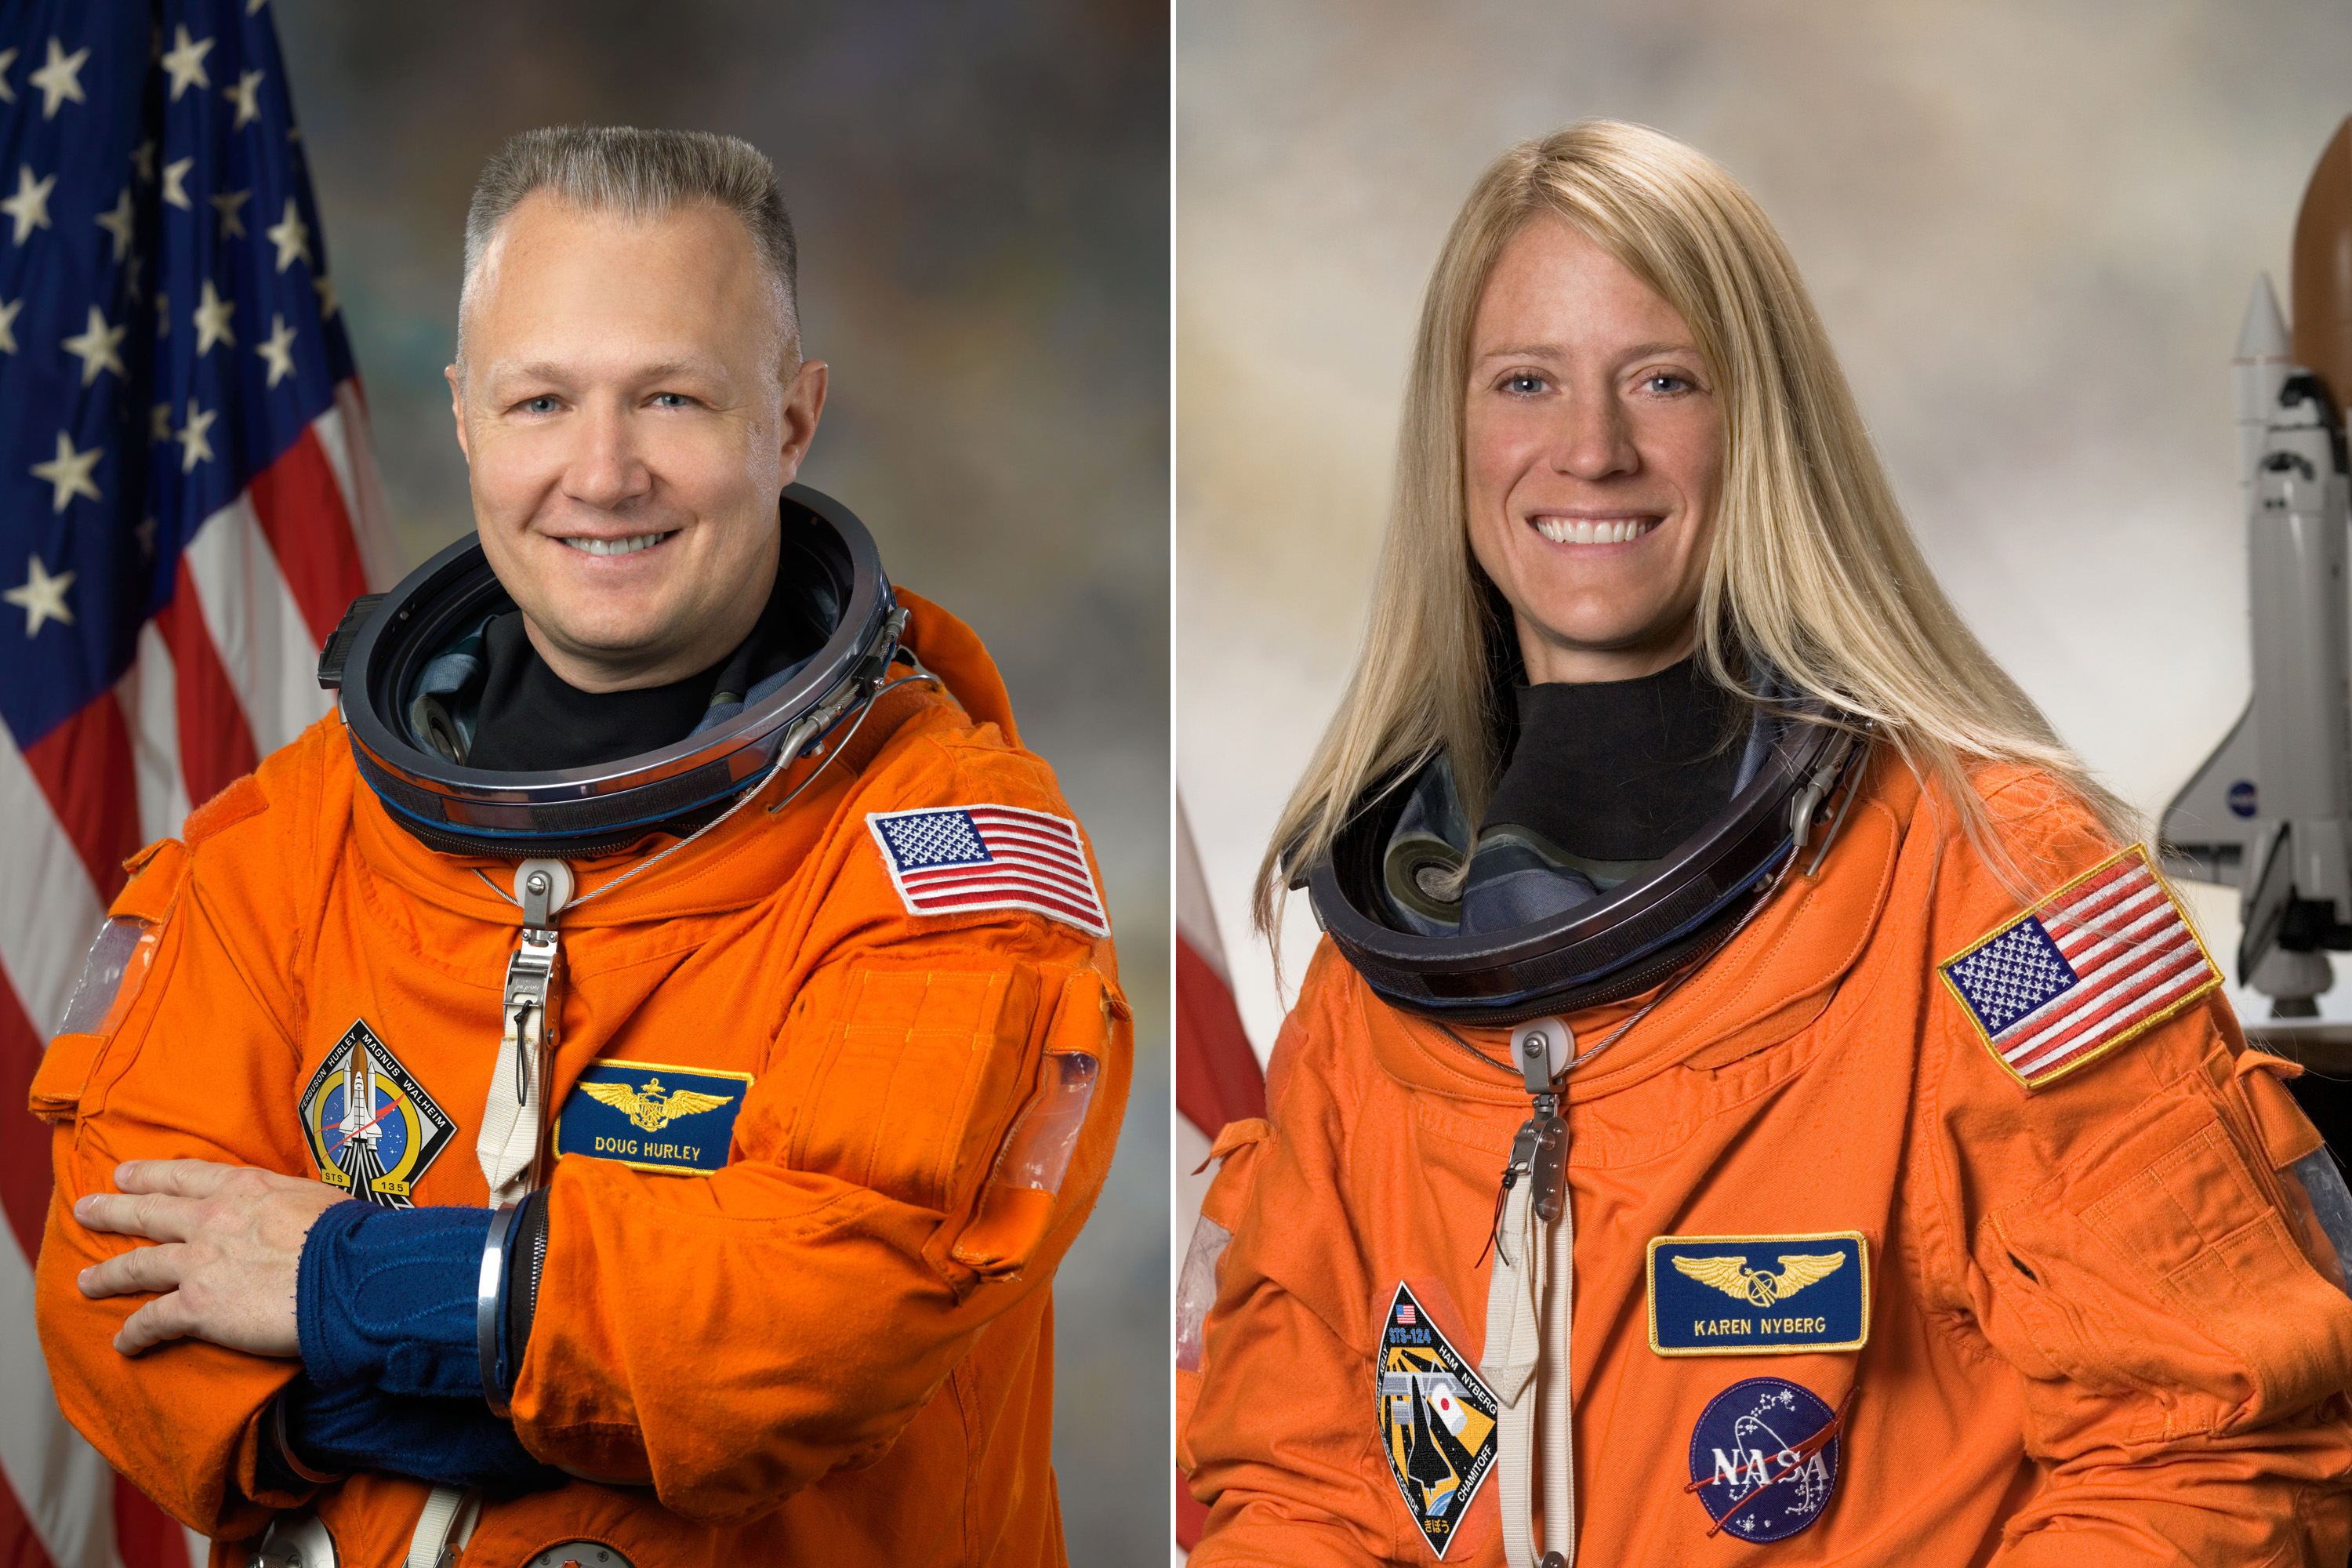 Doug Hurley and Karen Nyberg met in the same NASA astronaut class of 2000. They married years later and have a four-year-old son. Between them they have flown four times, two flown by Hurley and two flown by Nyberg.